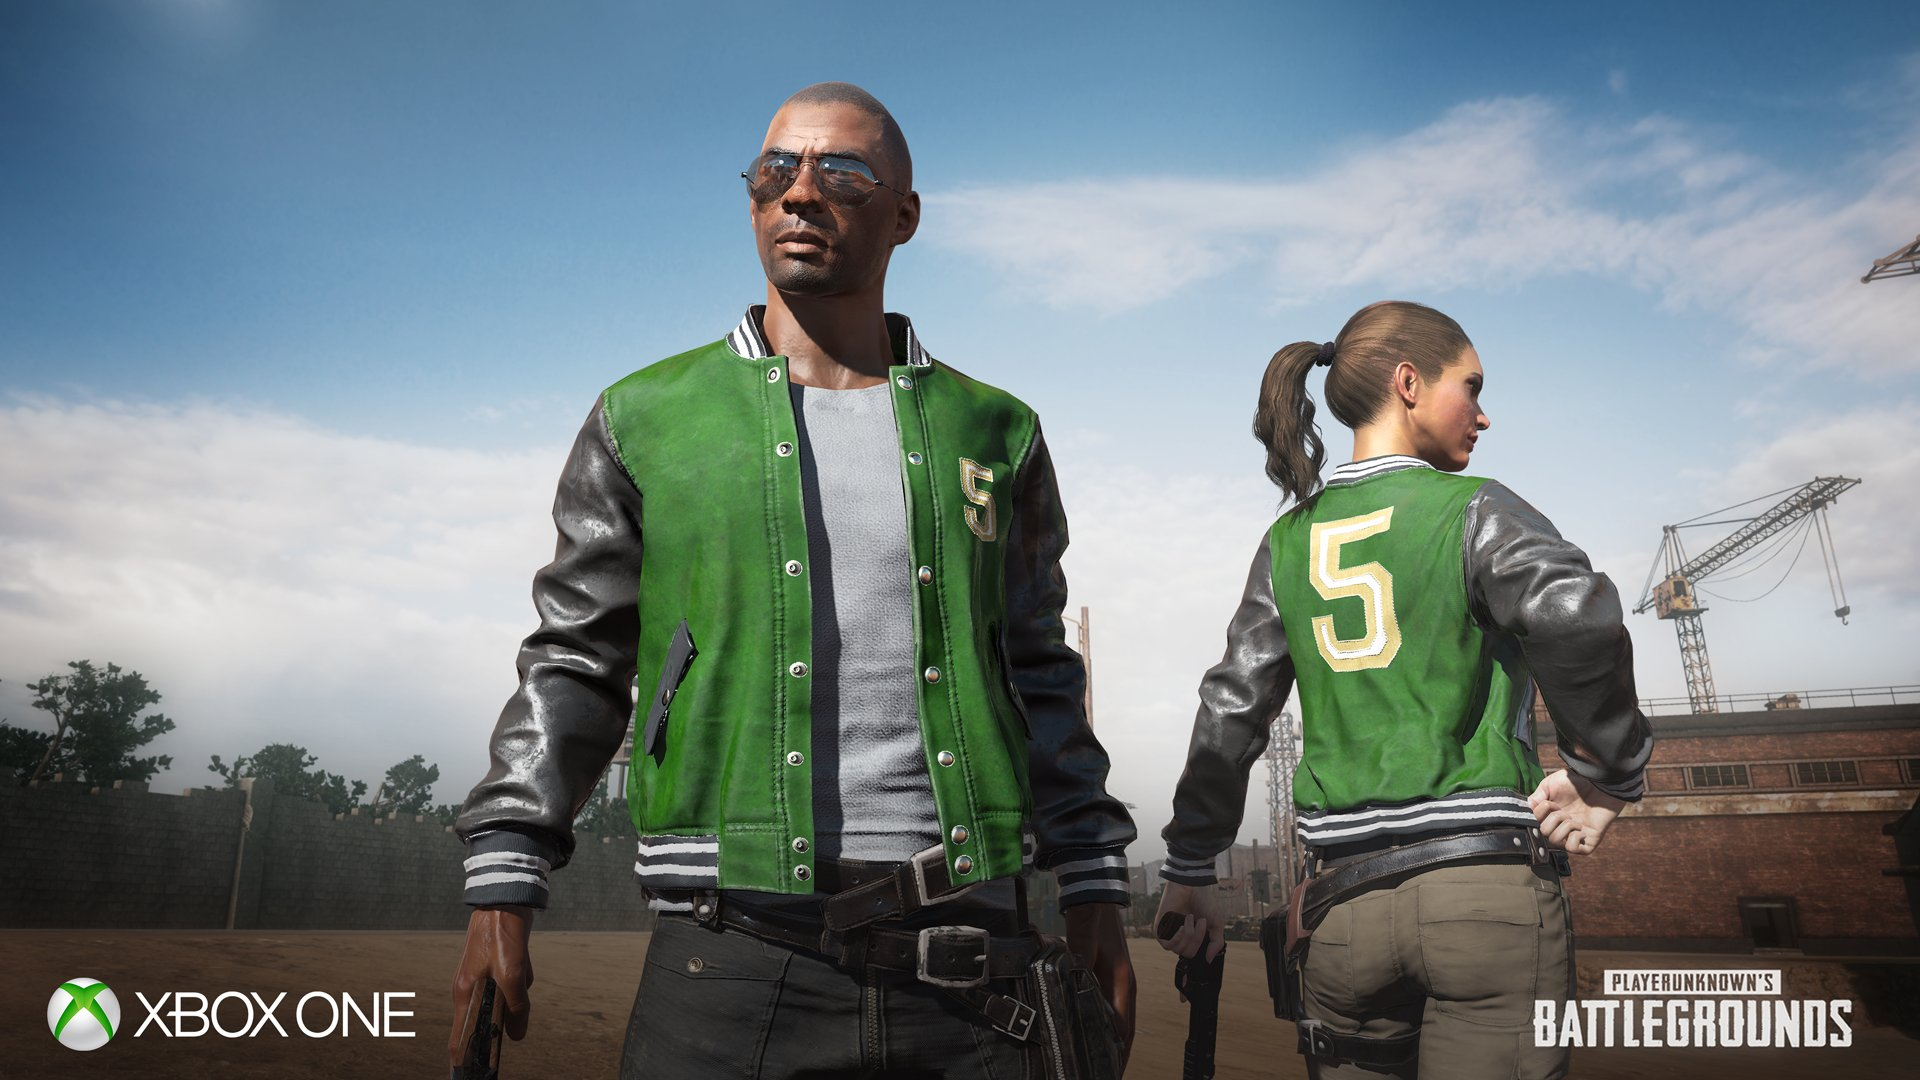 5M players. One sweet jacket. Chicken dinner not included. #PUBG Details here: https://t.co/pvpIHHDoHS https://t.co/QGU47Y3xOQ